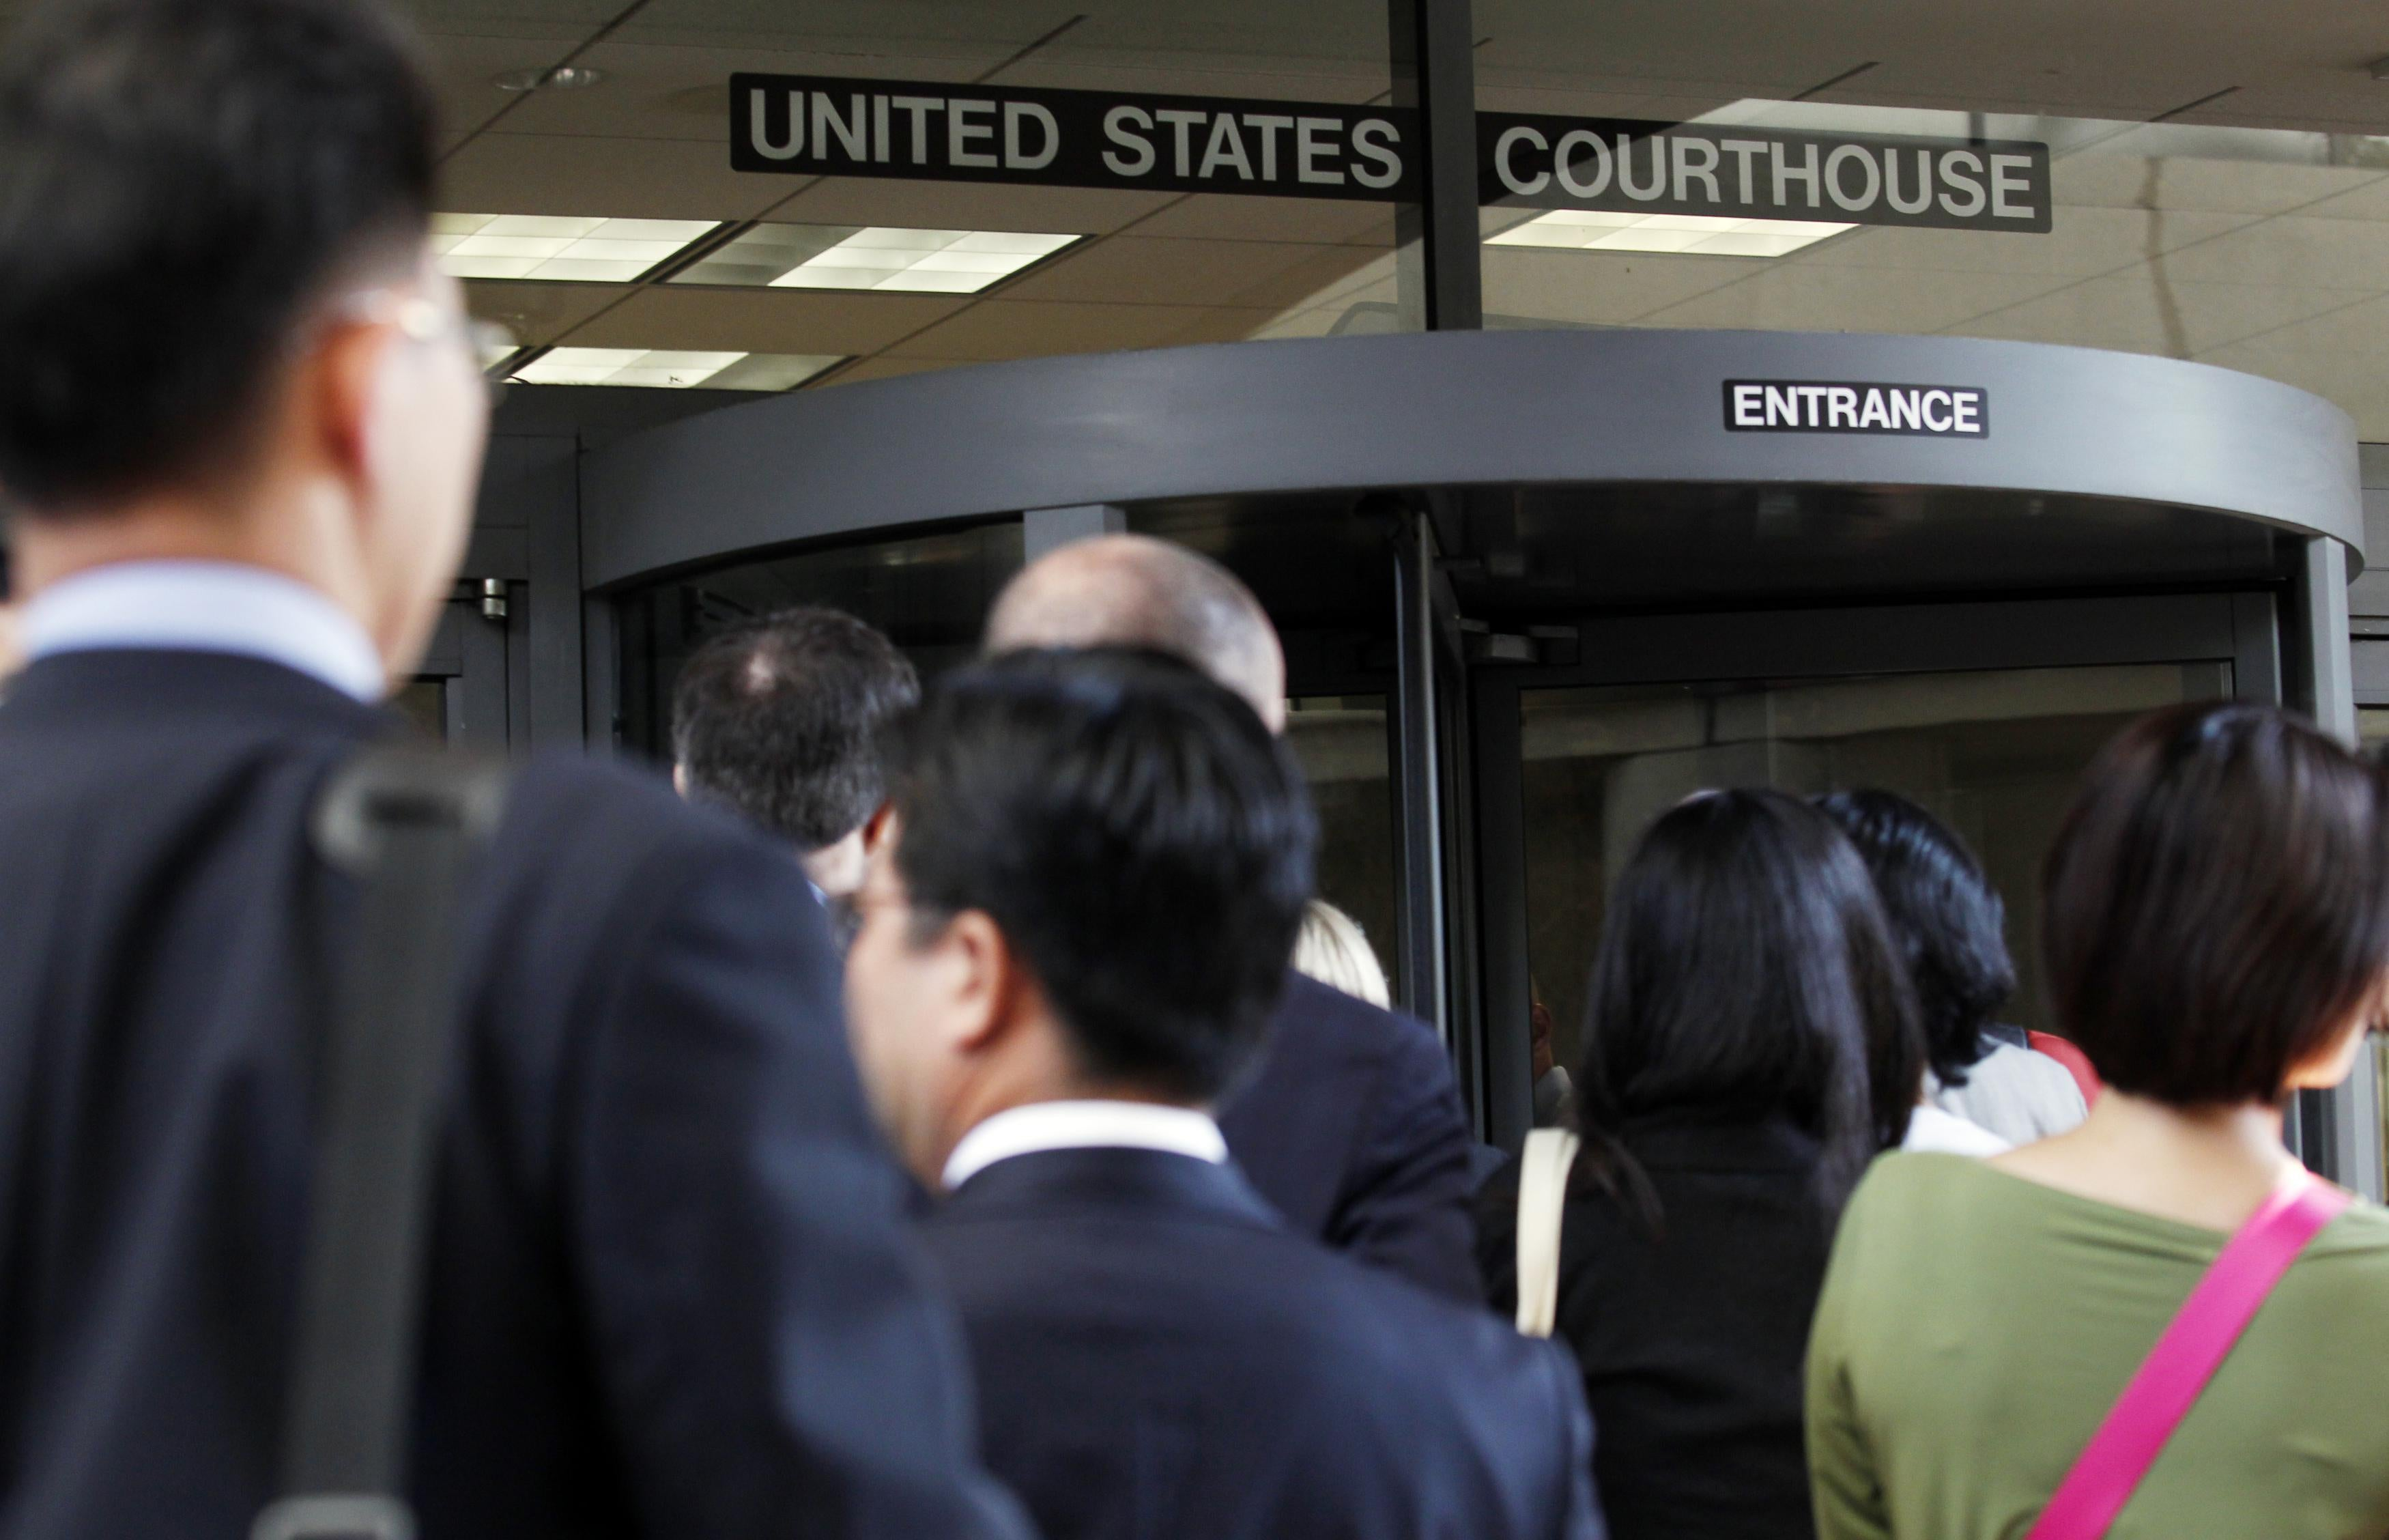 Individuals line up to enter the Robert F. Peckham United States Courthouse Building to watch Apple and Samsung face each other in federal district court for a patent infringement case on July 30, 2012 in San Jose, California.